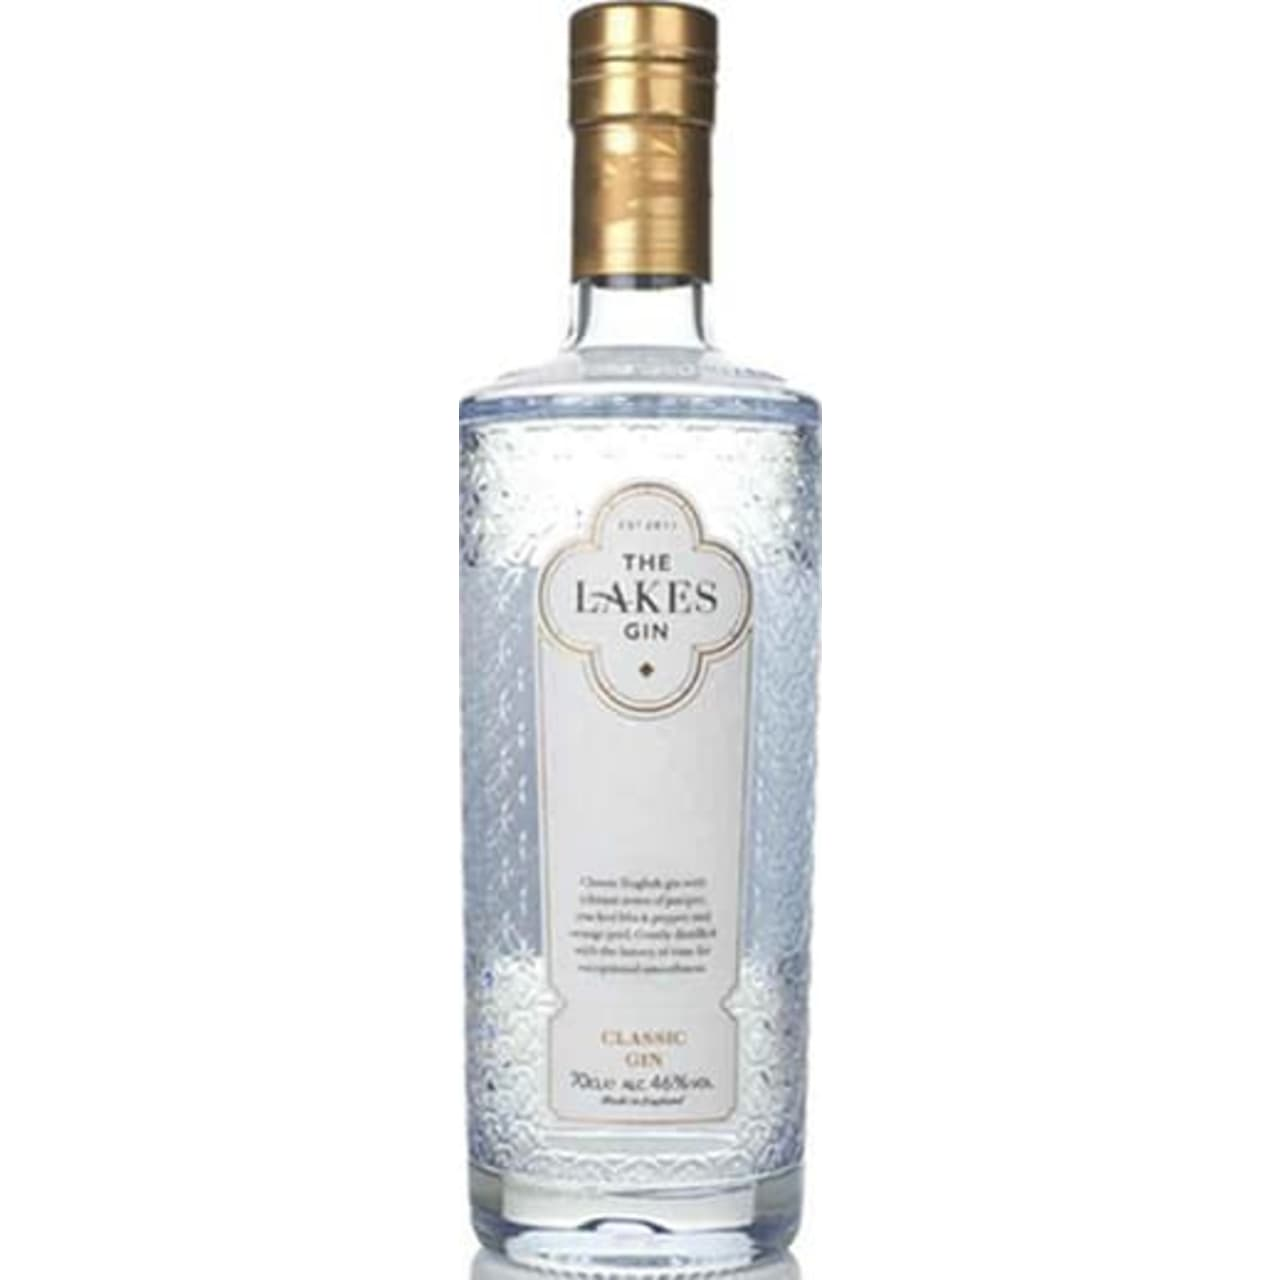 Product Image - The Lakes Classic Gin